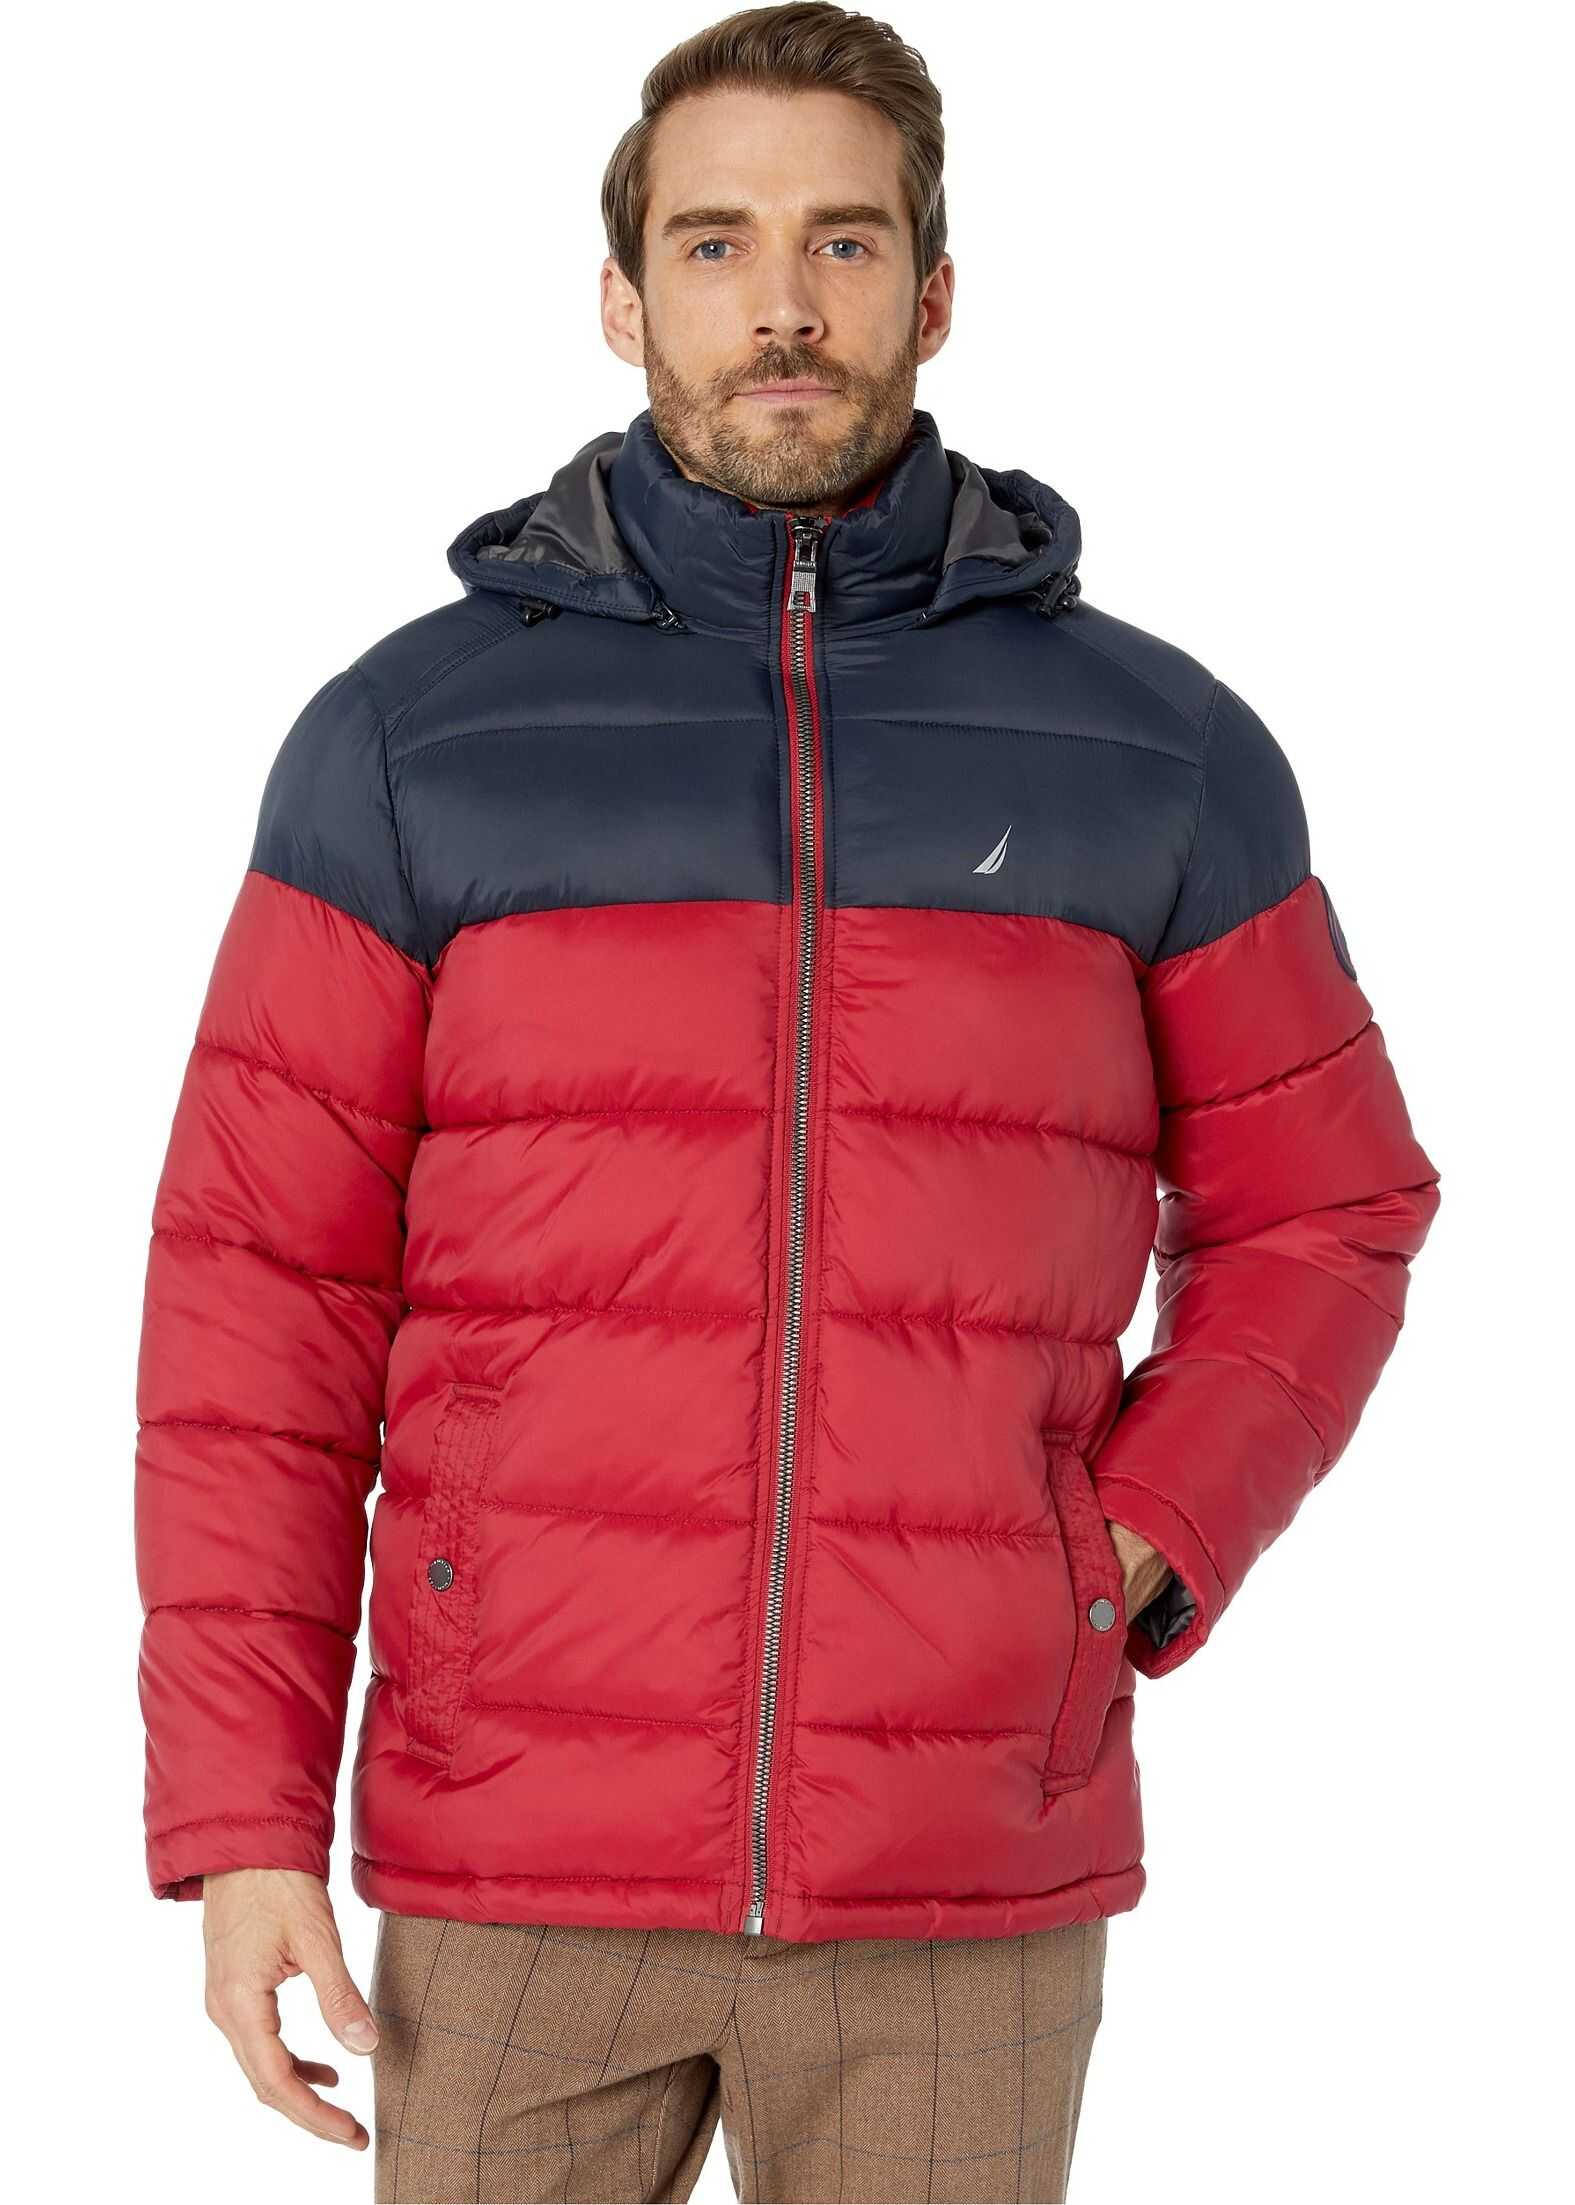 Nautica Logo Puffer w/ Removable Hood Red/Dark Navy